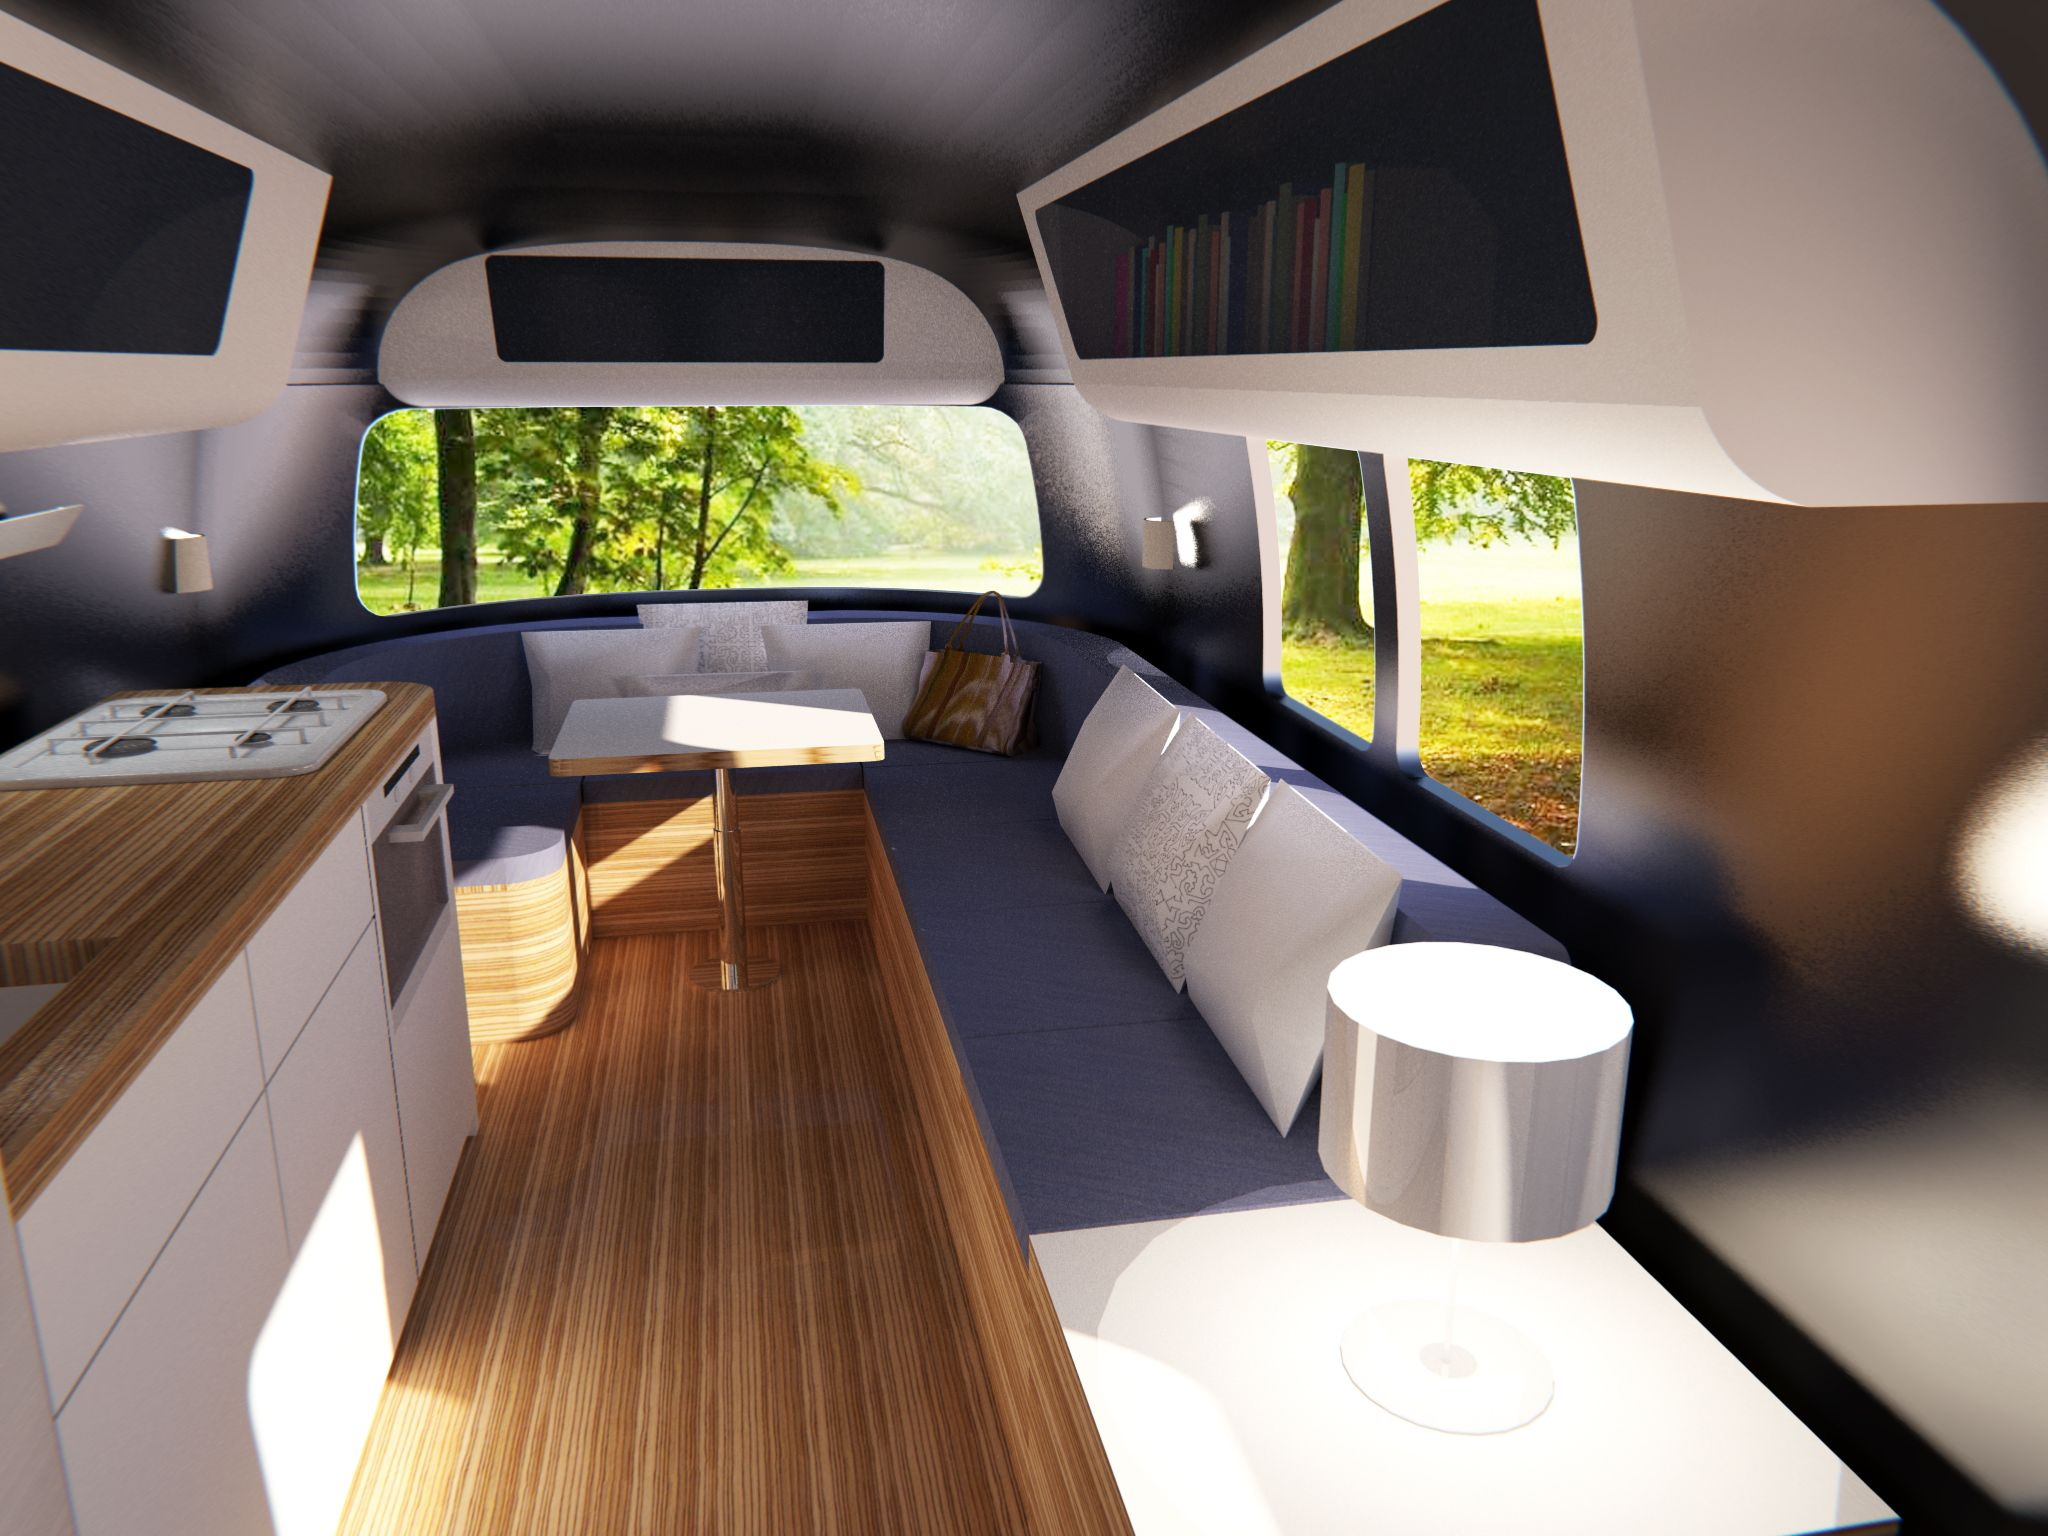 Caravan modern living google search compact living for Interior caravan designs